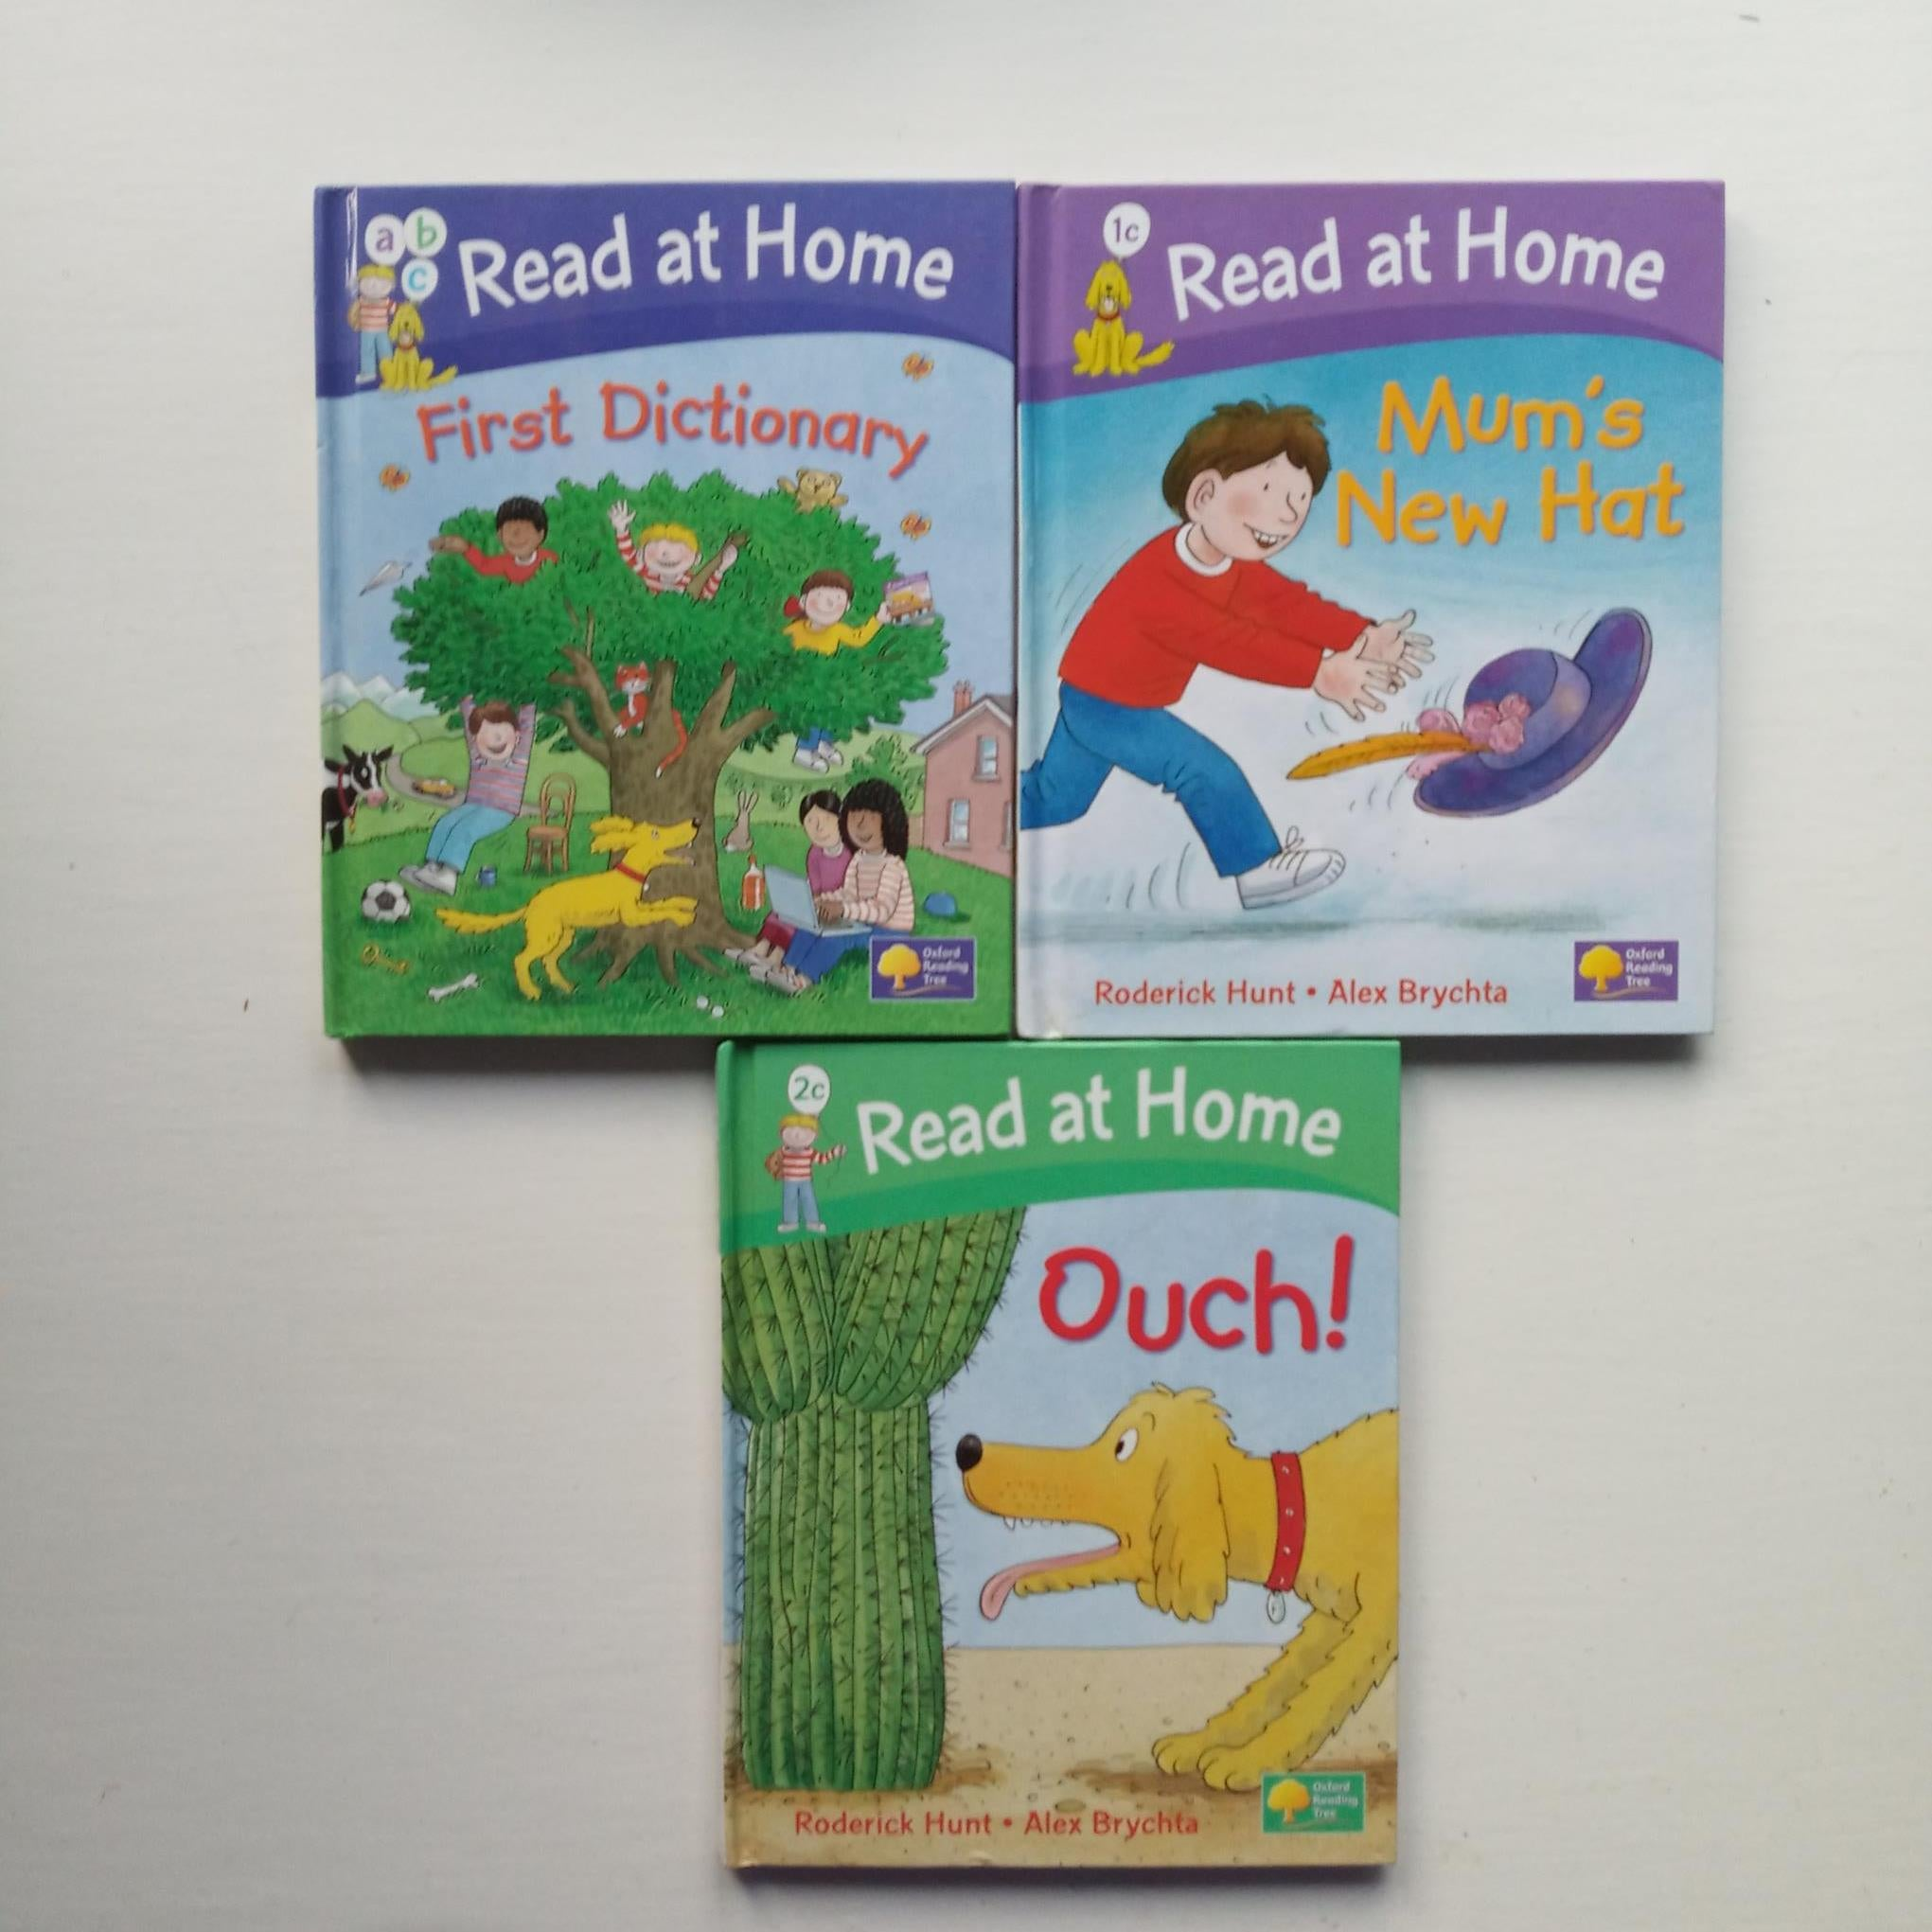 Biff Chip and Kipper Read at Home Books by Roderick Hunt